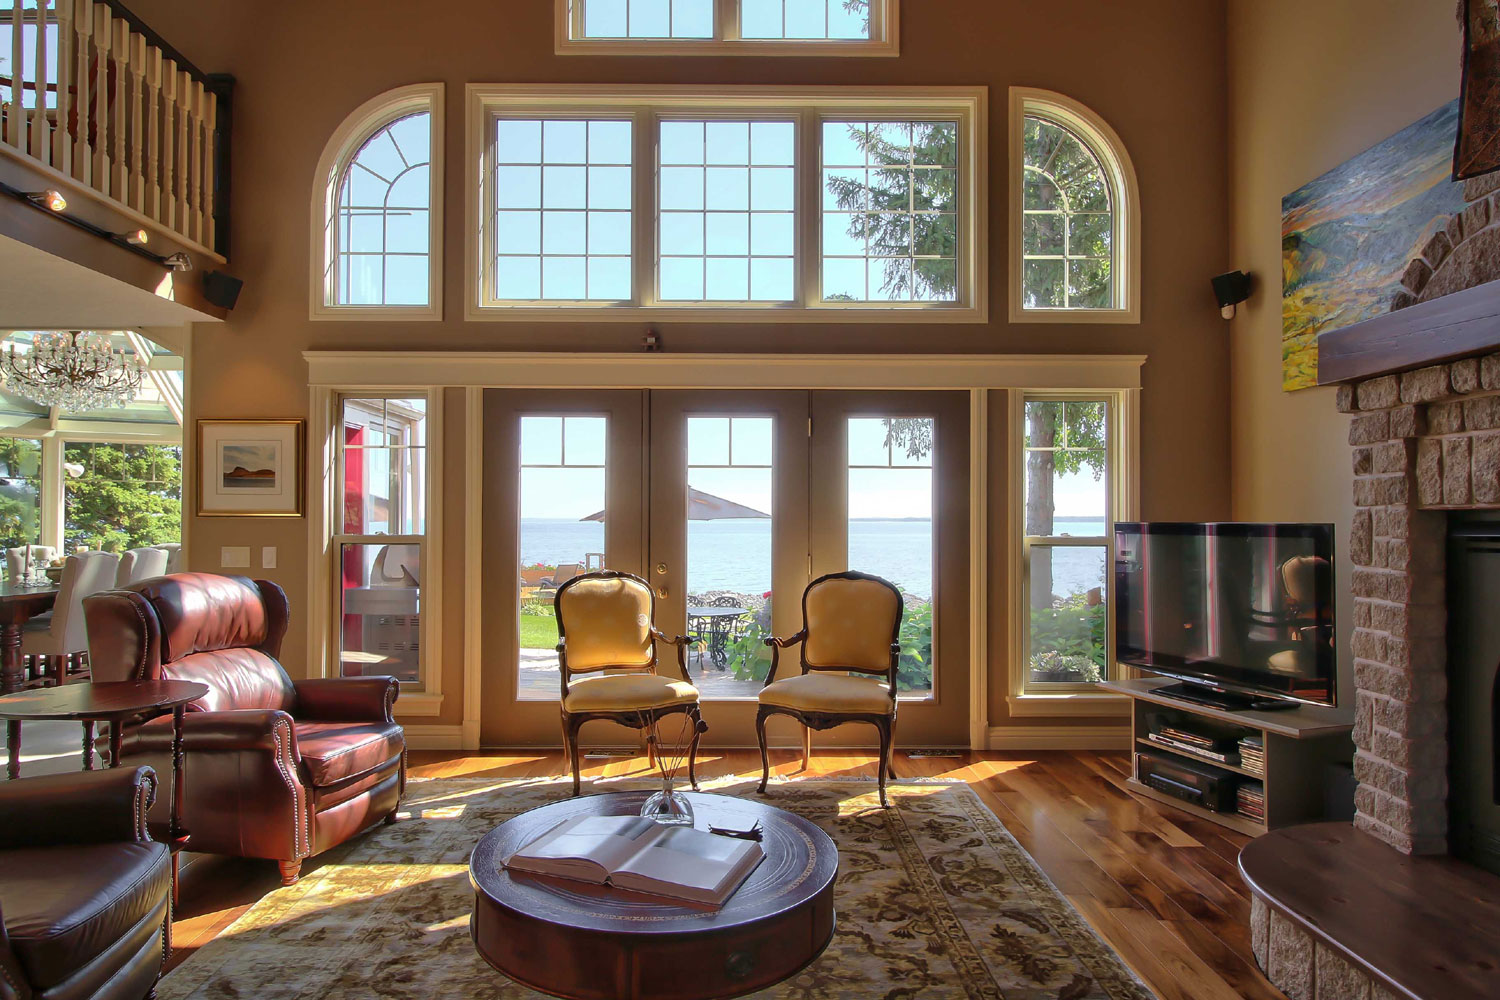 This waterfront home in Wasaga Beach, Ontario, is centrally located to ski clubs, golf courses, and other amenities of the area.